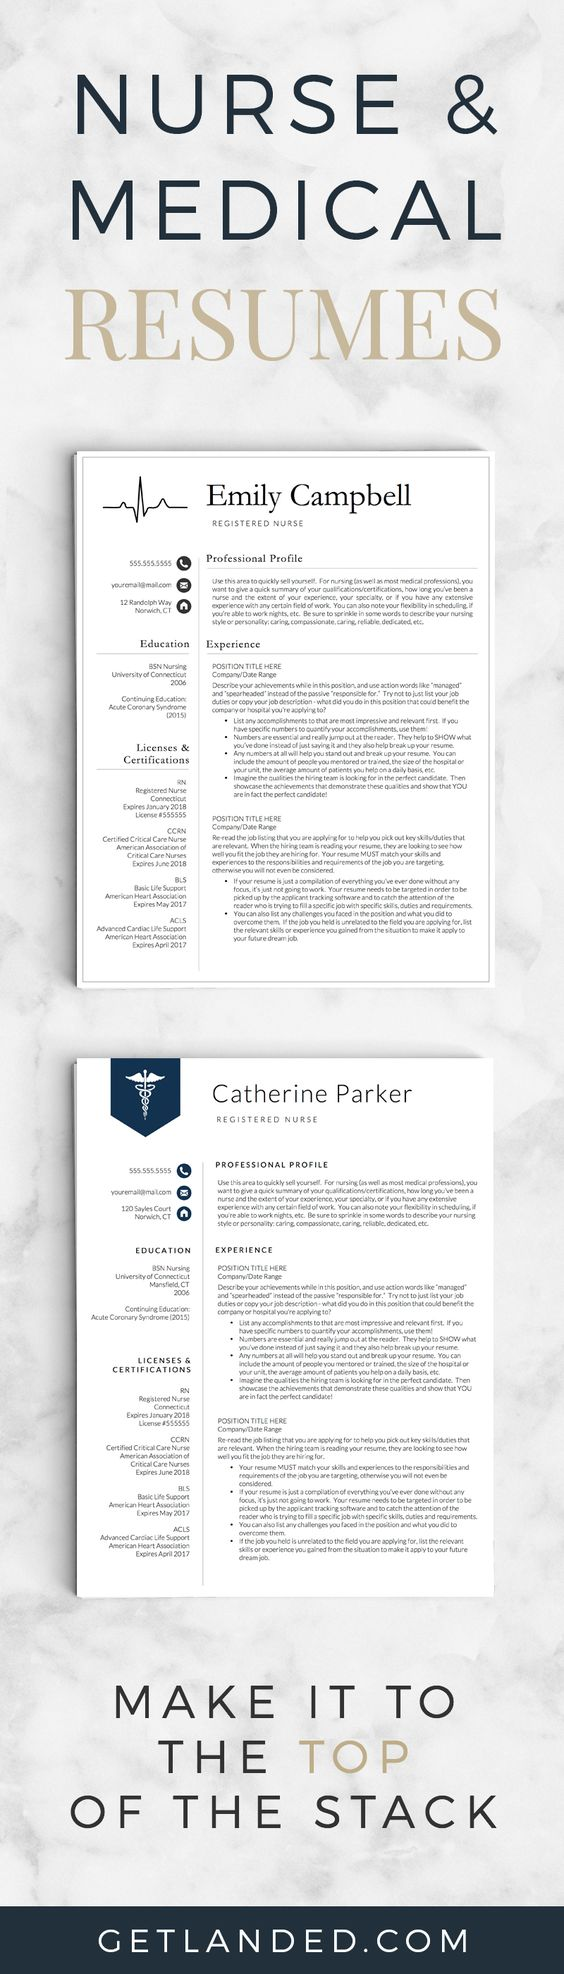 Nurse Resume Template entry level nurse resume sample download this resume sample to use as a template Nurse Resume Templates Medical Resumes Resume Templates Specifically Designed For The Nursing Profession